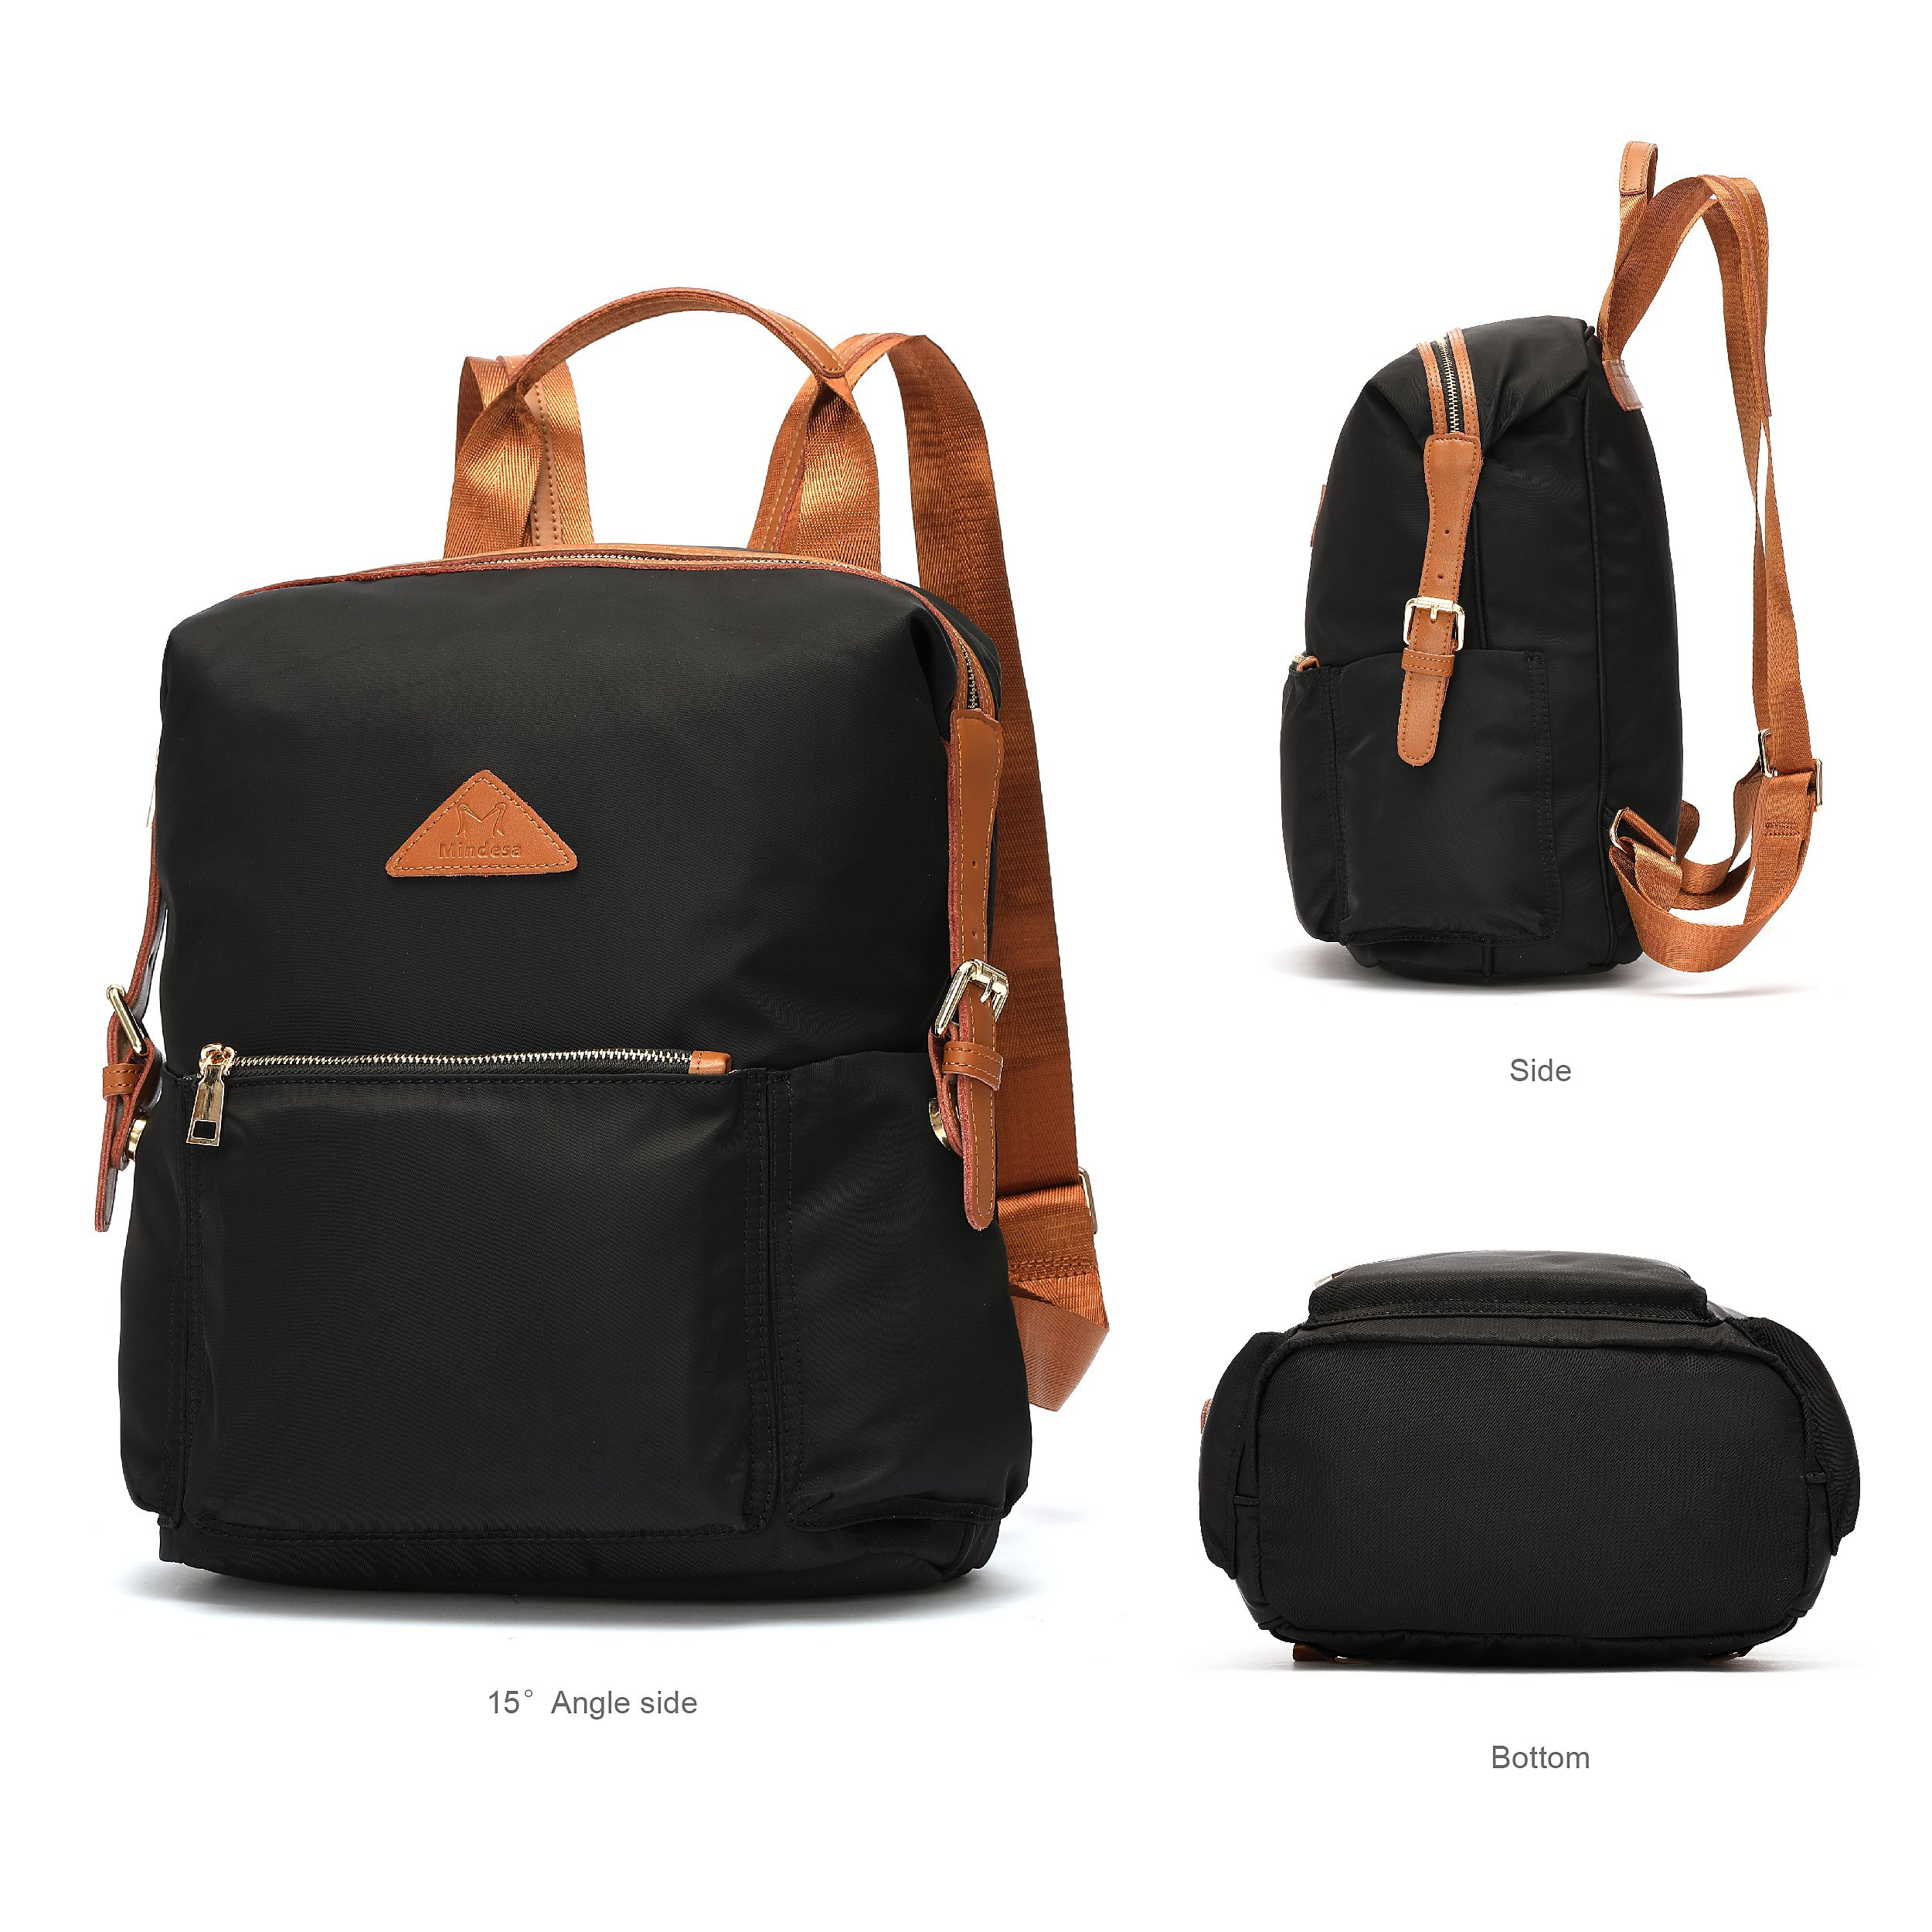 Ali Victory Women's Anti-Theft Water Resistant Nylon Backpacks (Black) by Ali Victory (Image #2)